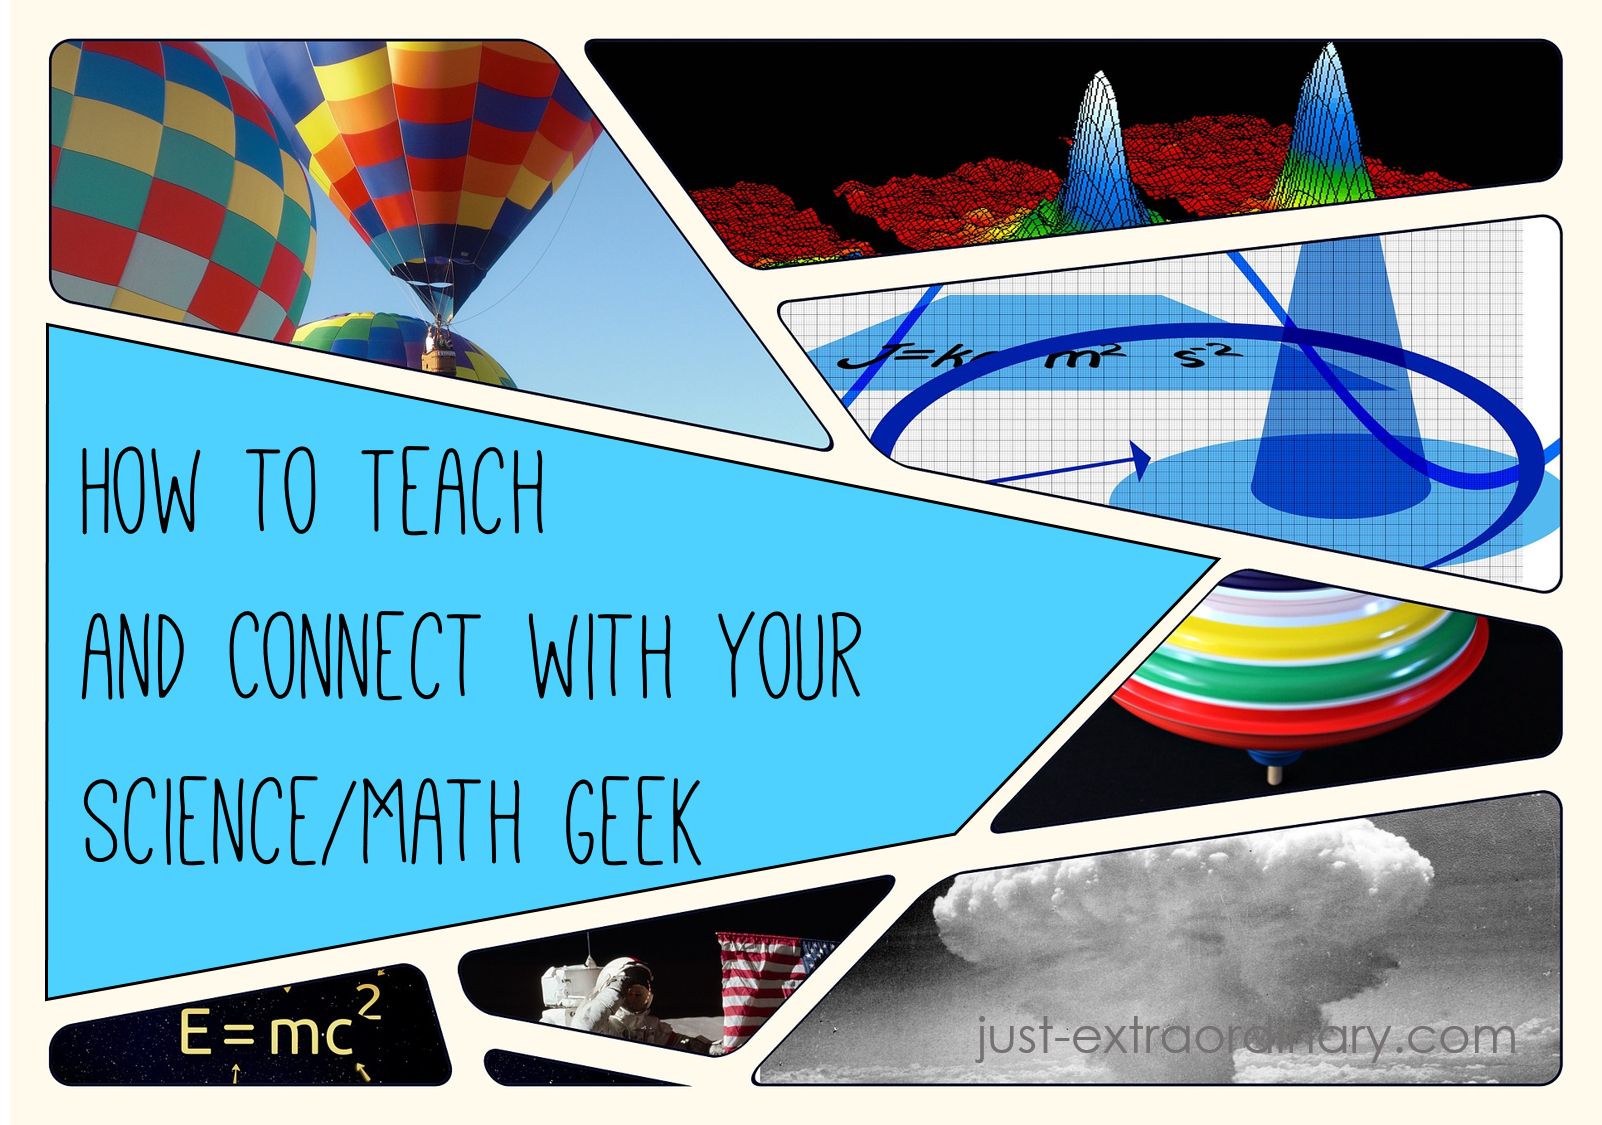 How to Teach and Connect with Your Science-Math Geek just-extraordinary.com